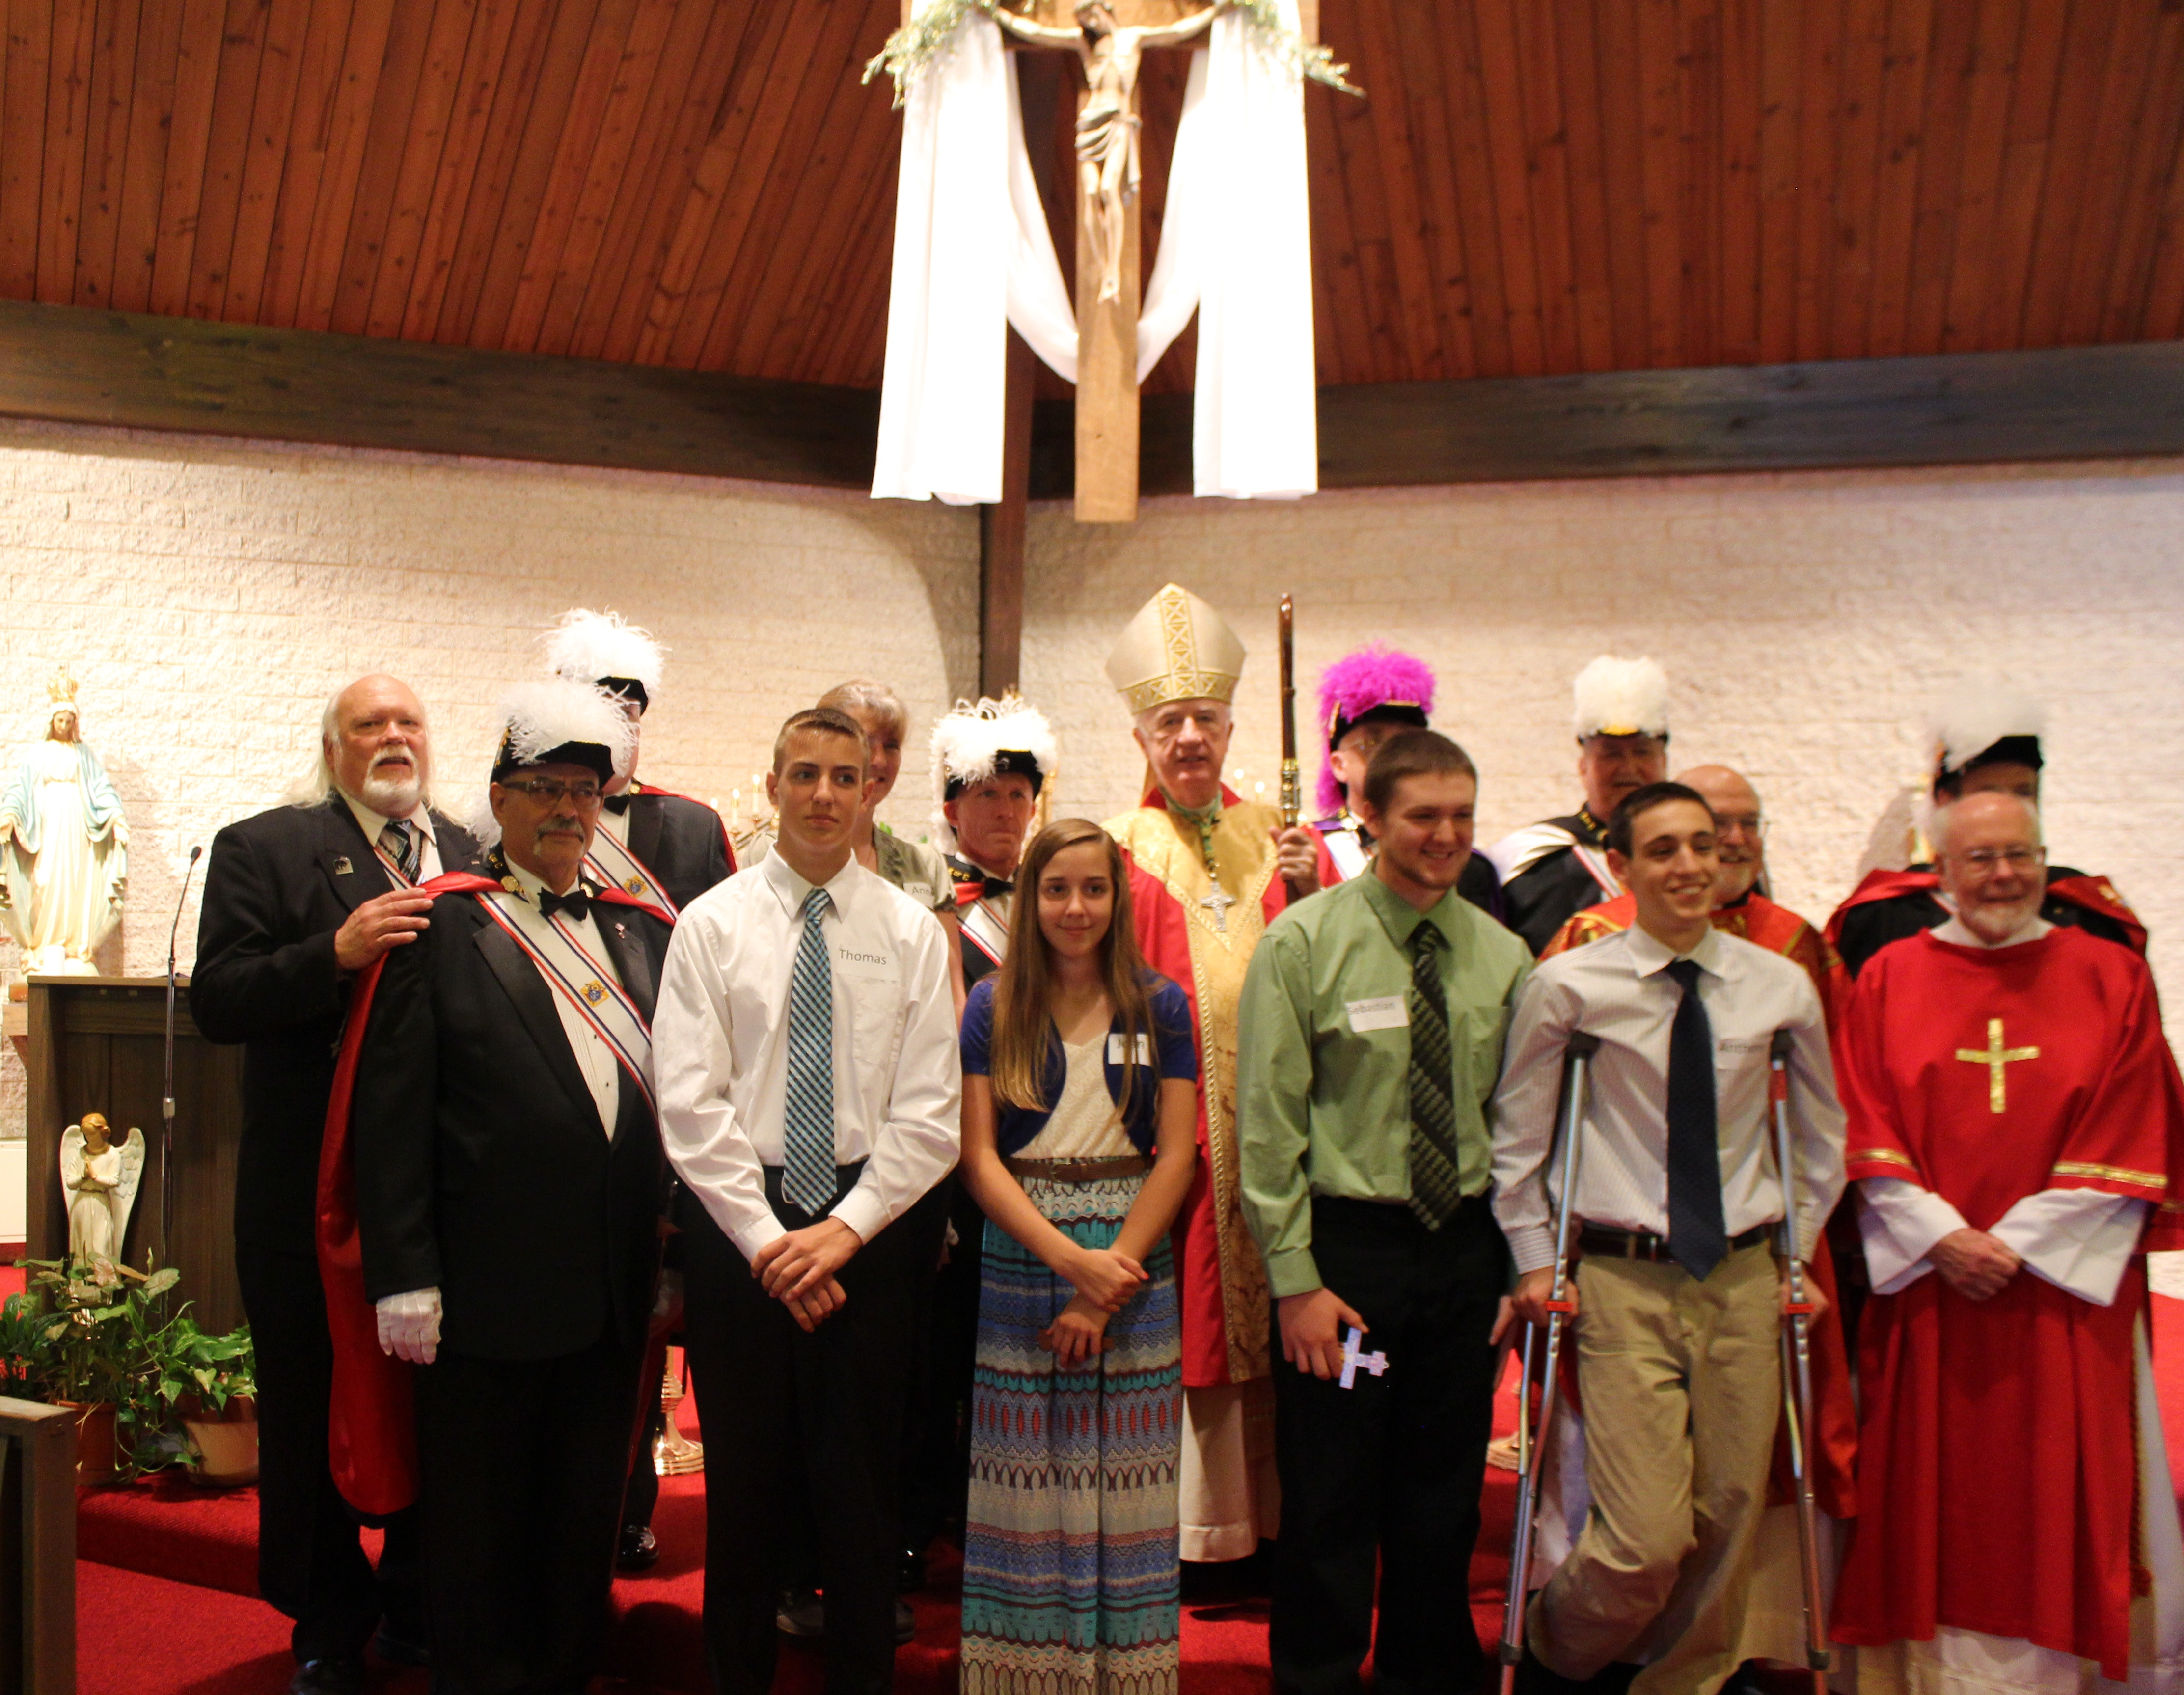 Bishops Bransfield,Fr Bill, Deacon Larry, Confirmandi Knights